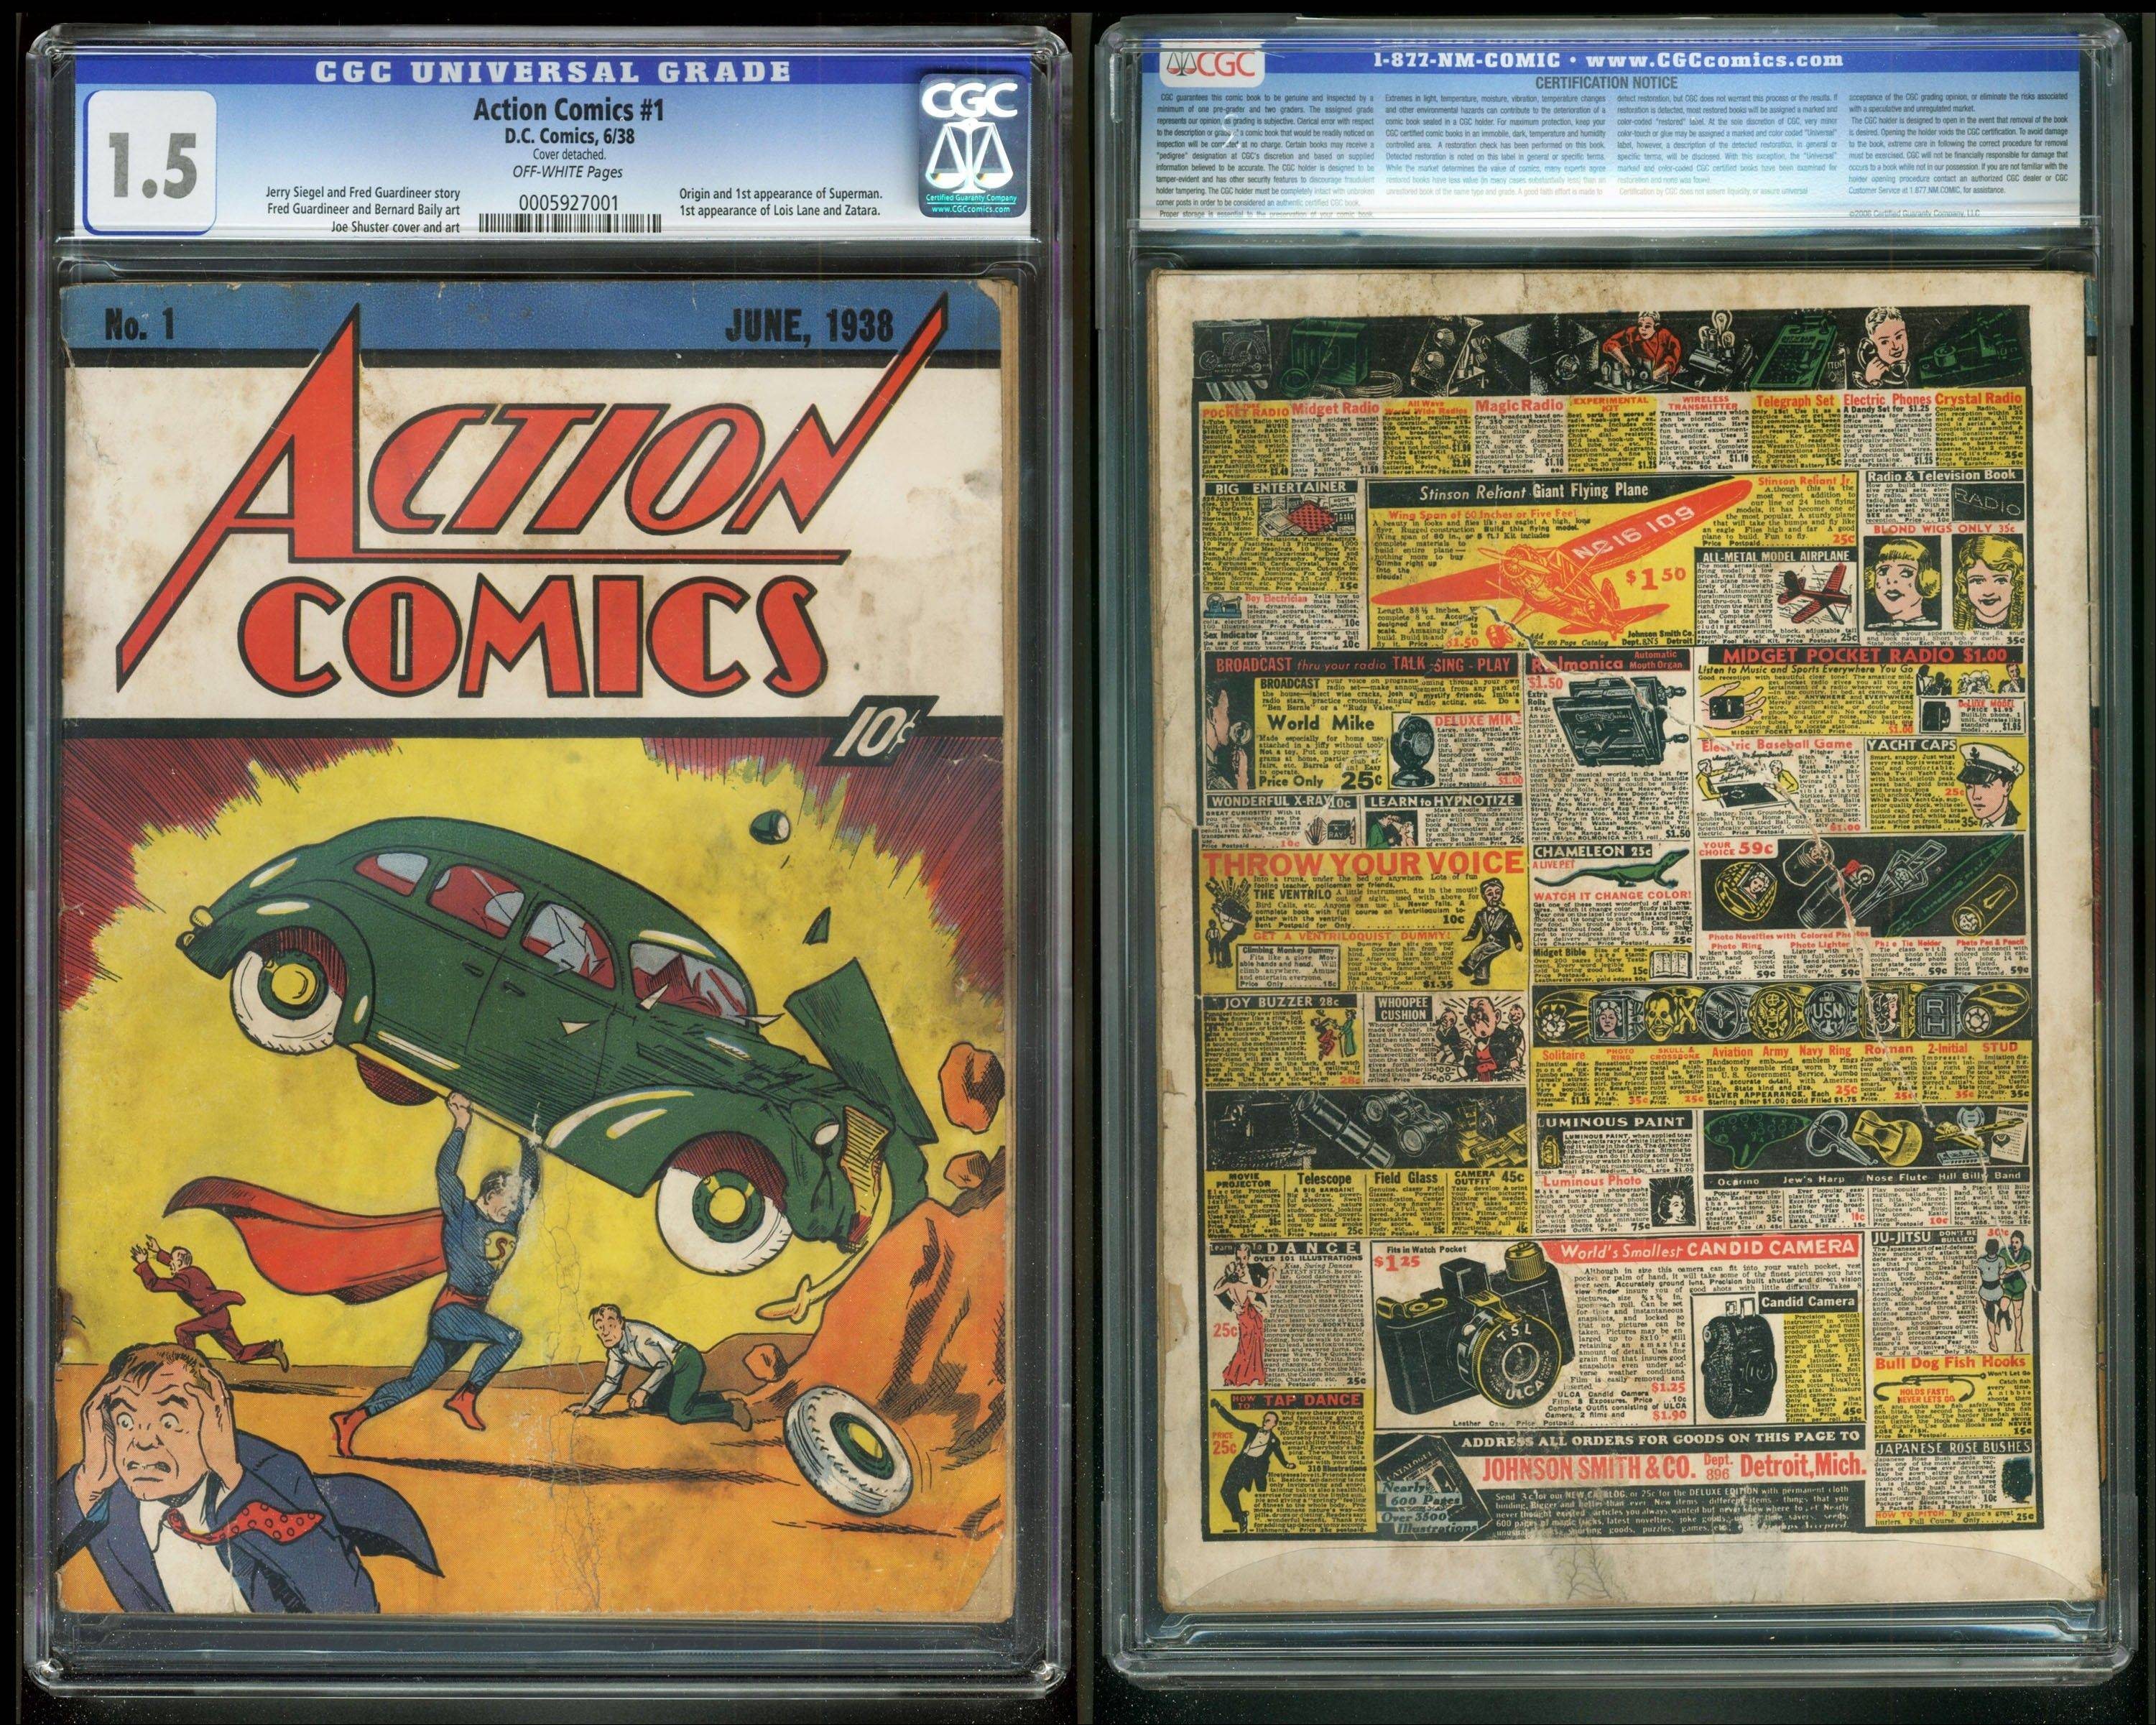 The front and back cover of �Action Comics No. 1� from 1938, featuring the debut of Superman.